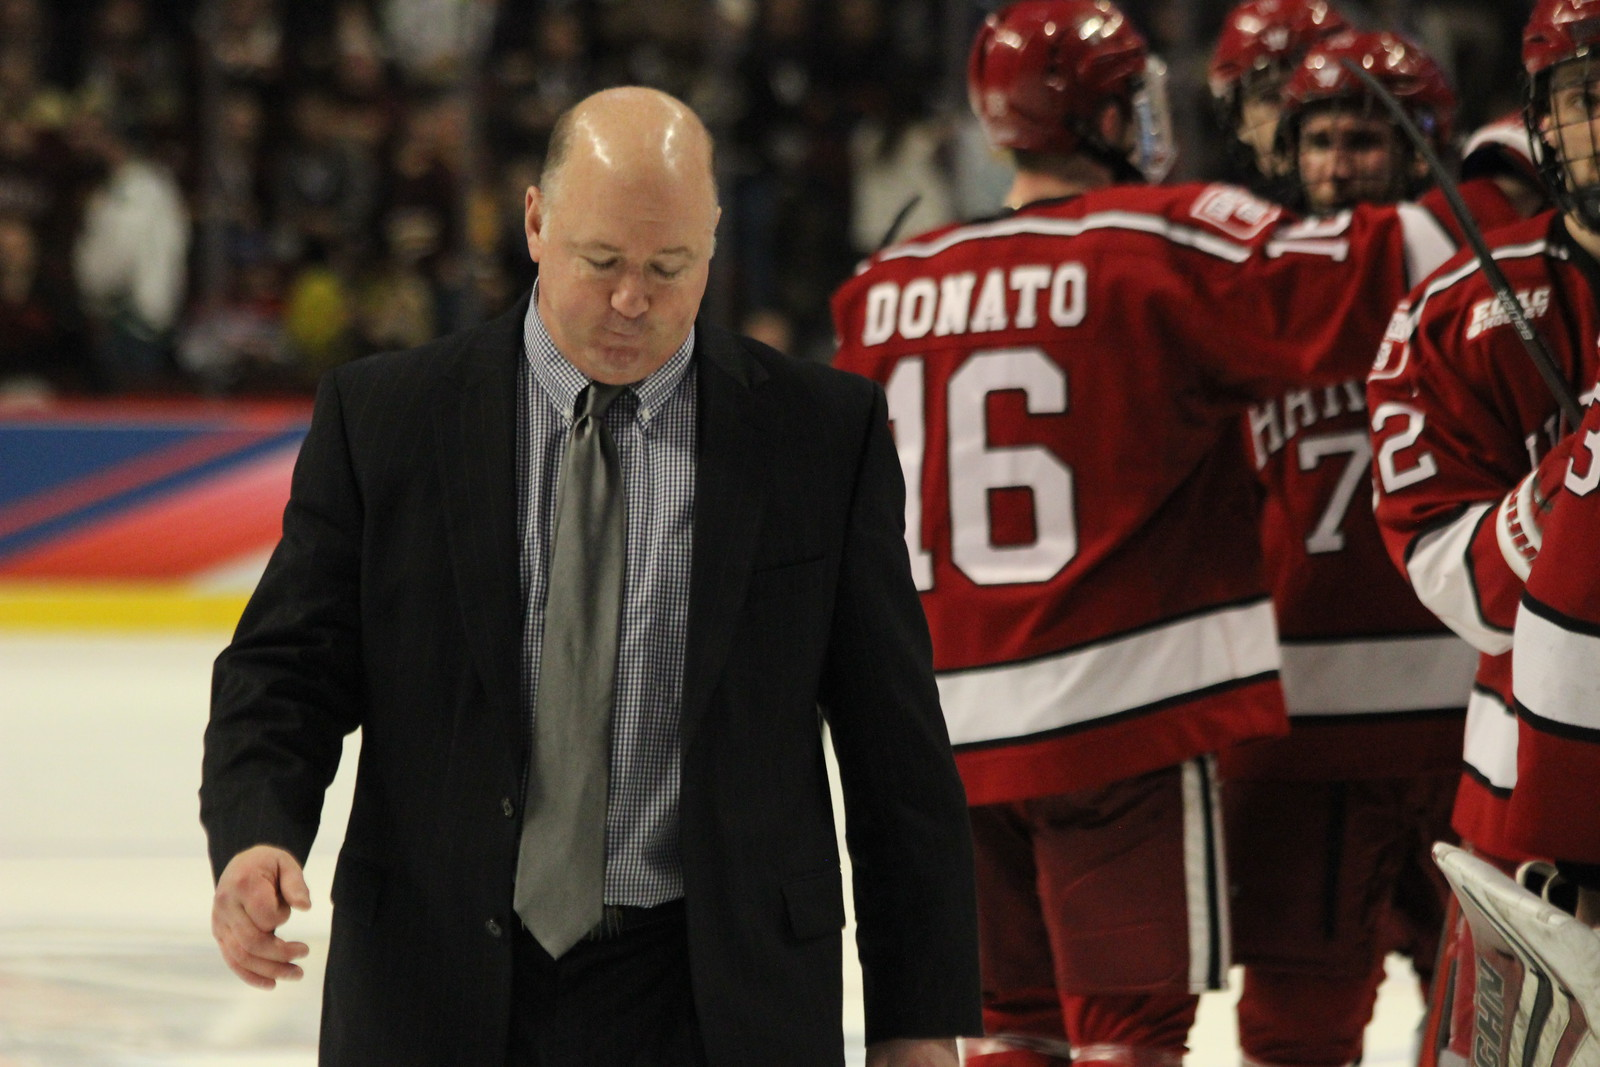 After bowing out of the NCAA Tournament in April's Frozen Four, coach Donato leaves the ice and lets his son Ryan have a moment with the outgoing seniors.